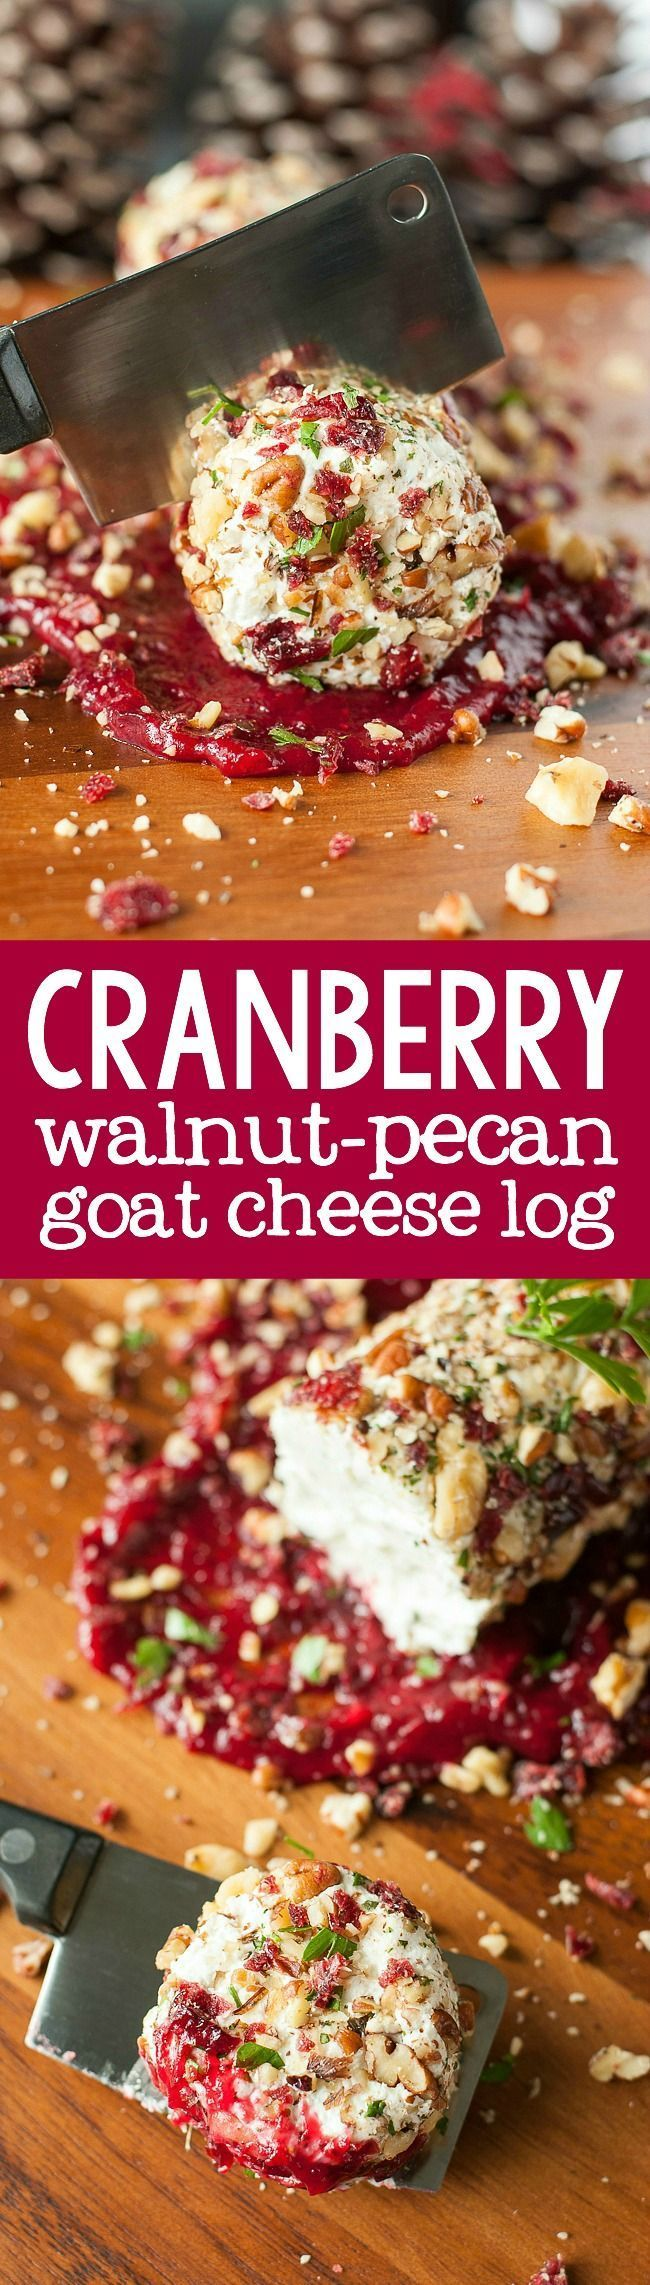 Cranberry Goat Cheese Log with Walnuts, Pecans, and Parsley :: quick, easy, and…